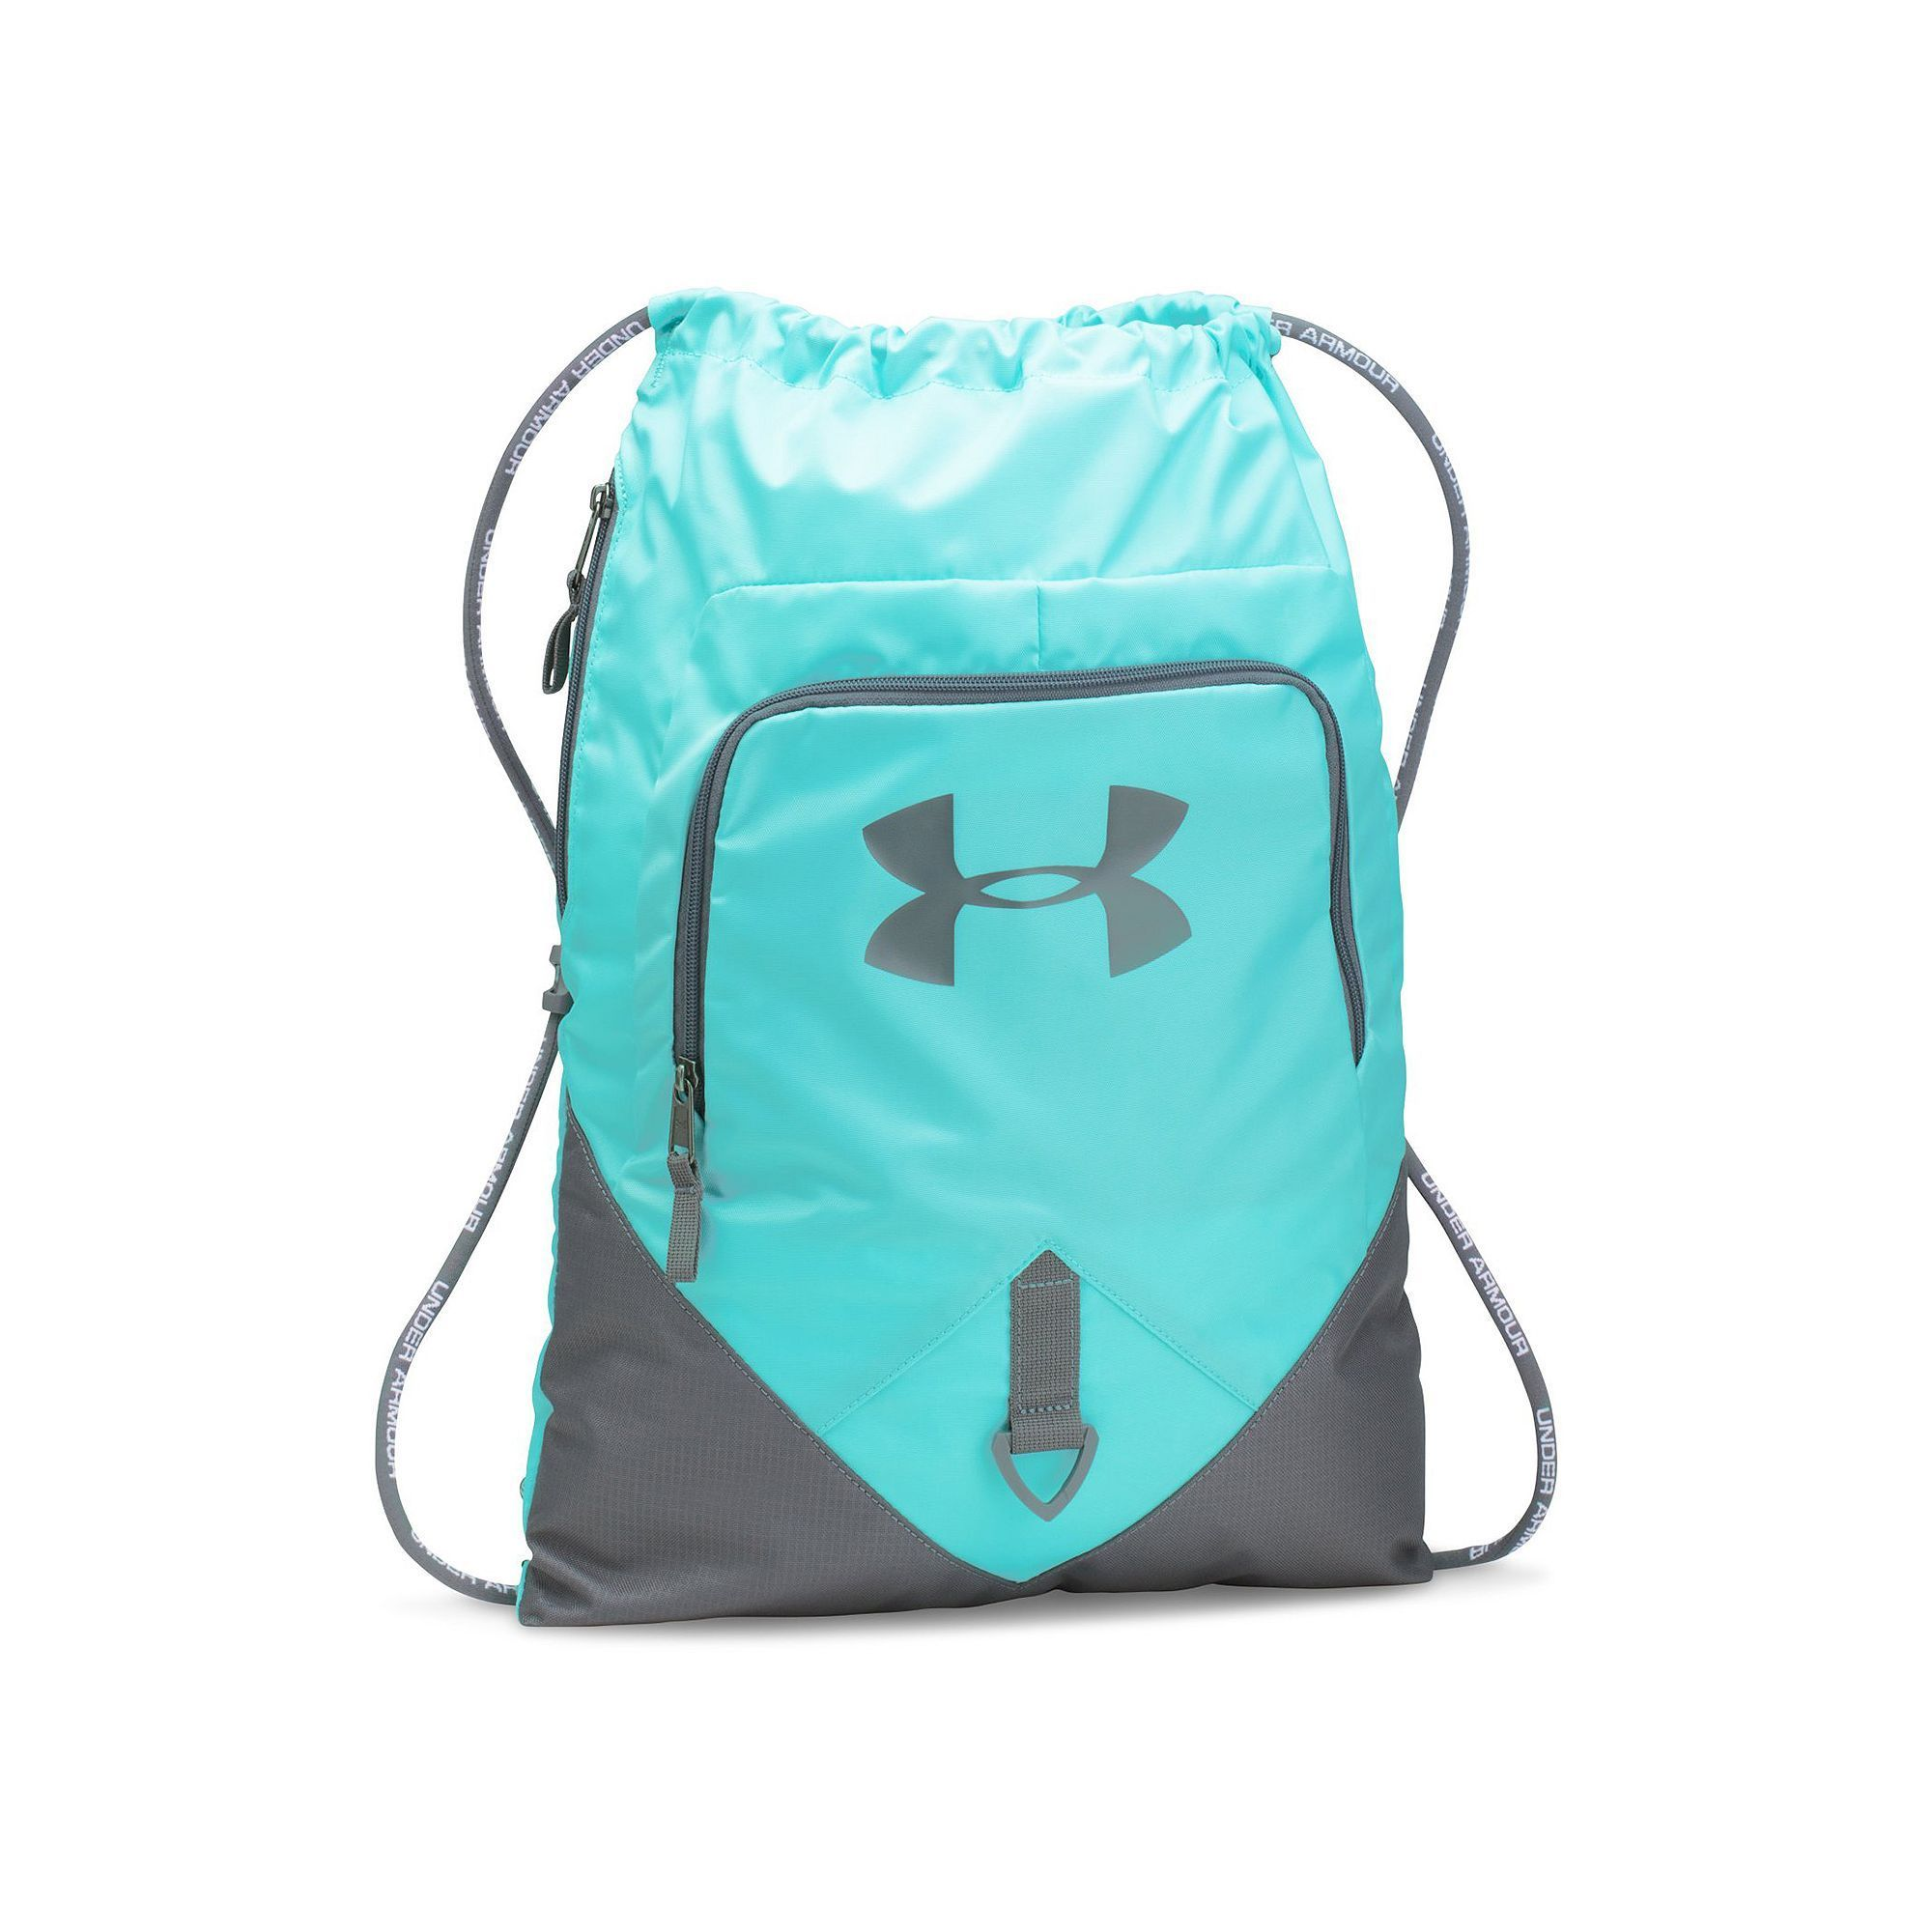 1006d1bc1542 Under Armour Undeniable Drawstring Backpack in 2019